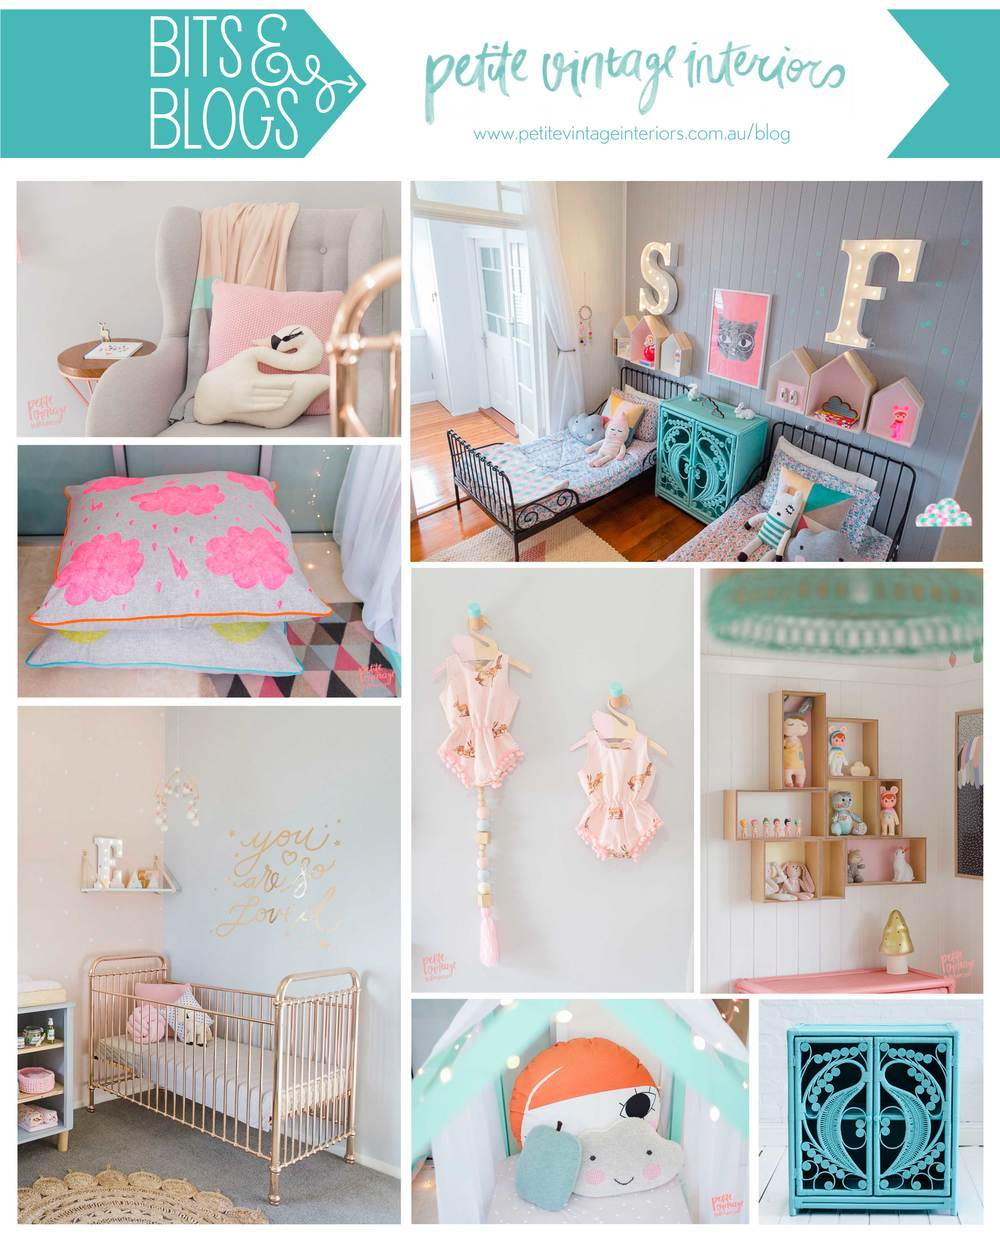 Images from Petite Vintage Interiors